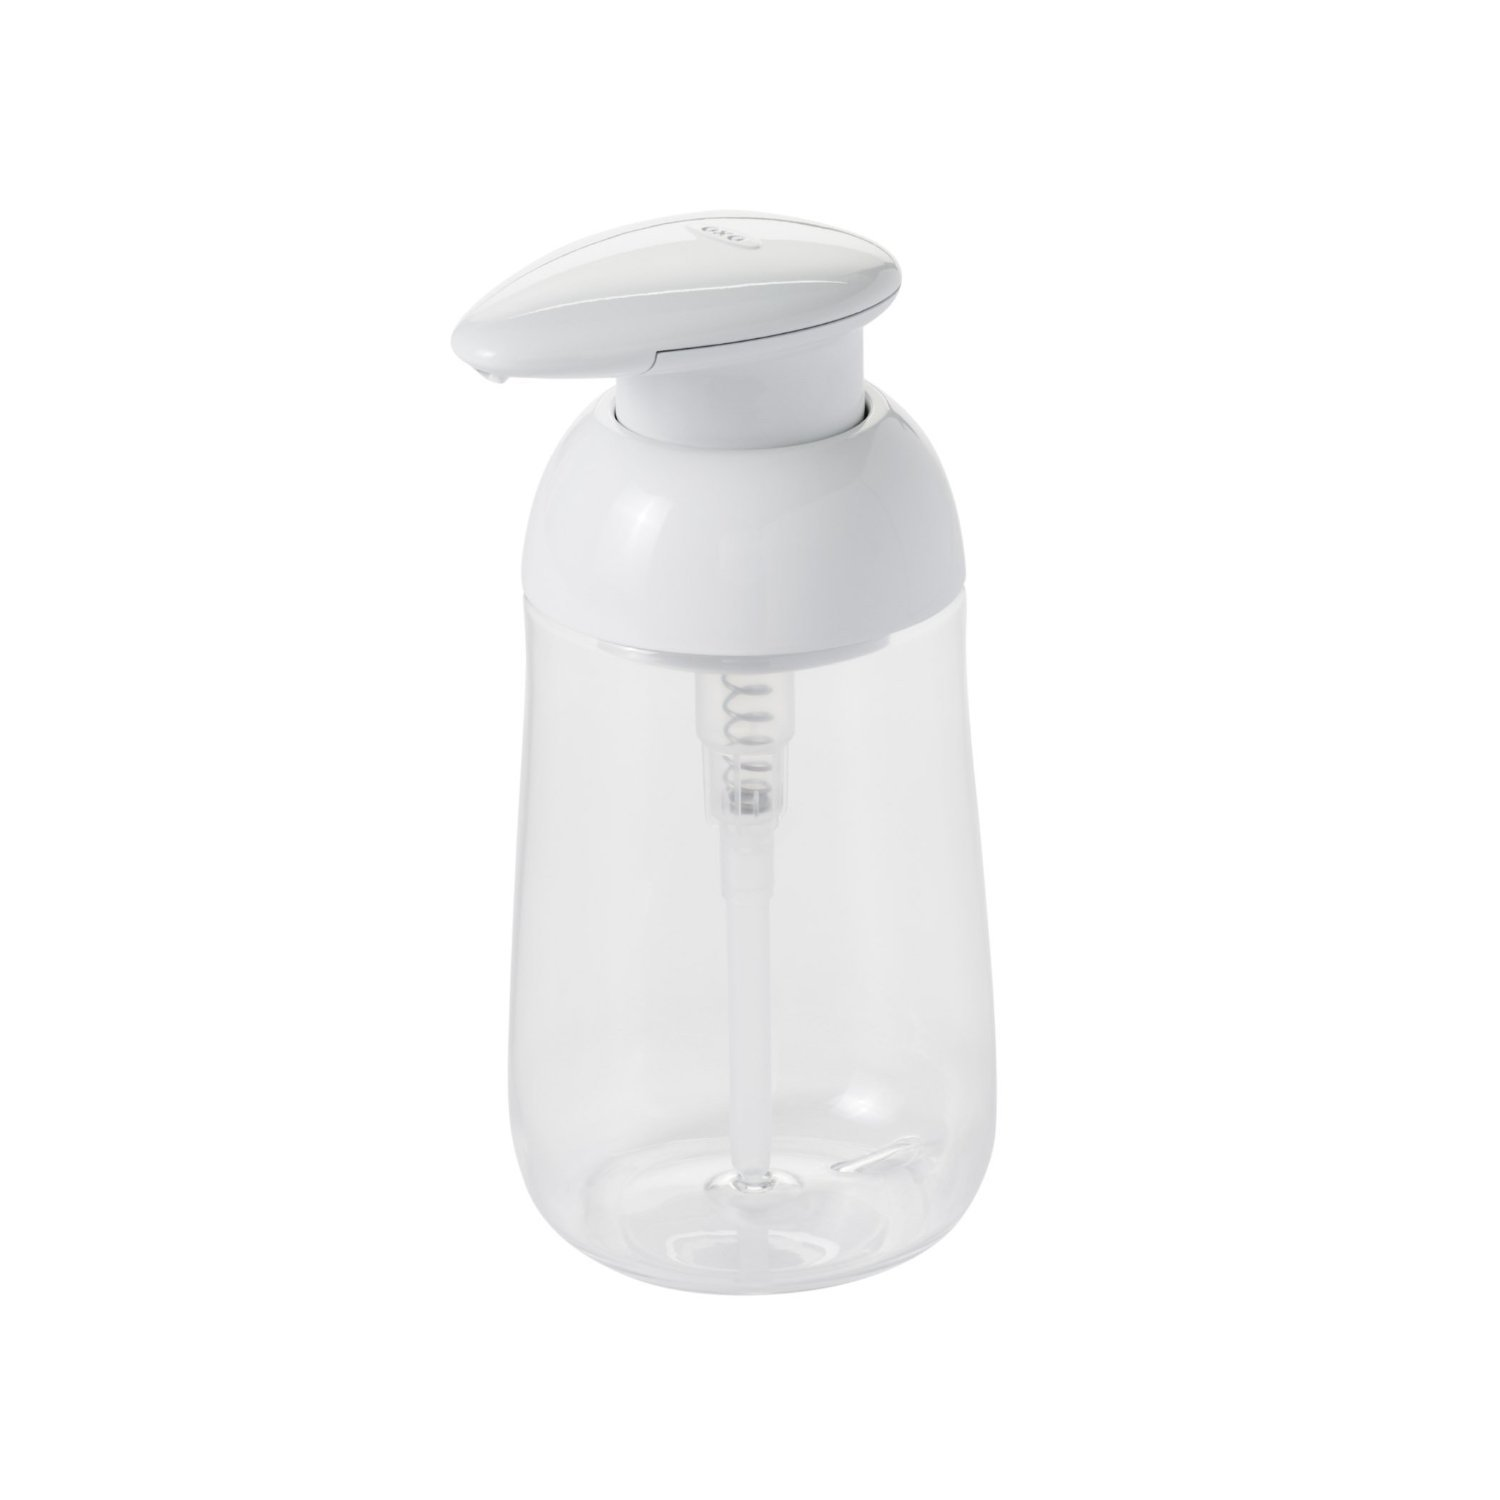 OXO Good Grips Soap Dispenser, Charcoal 13145900